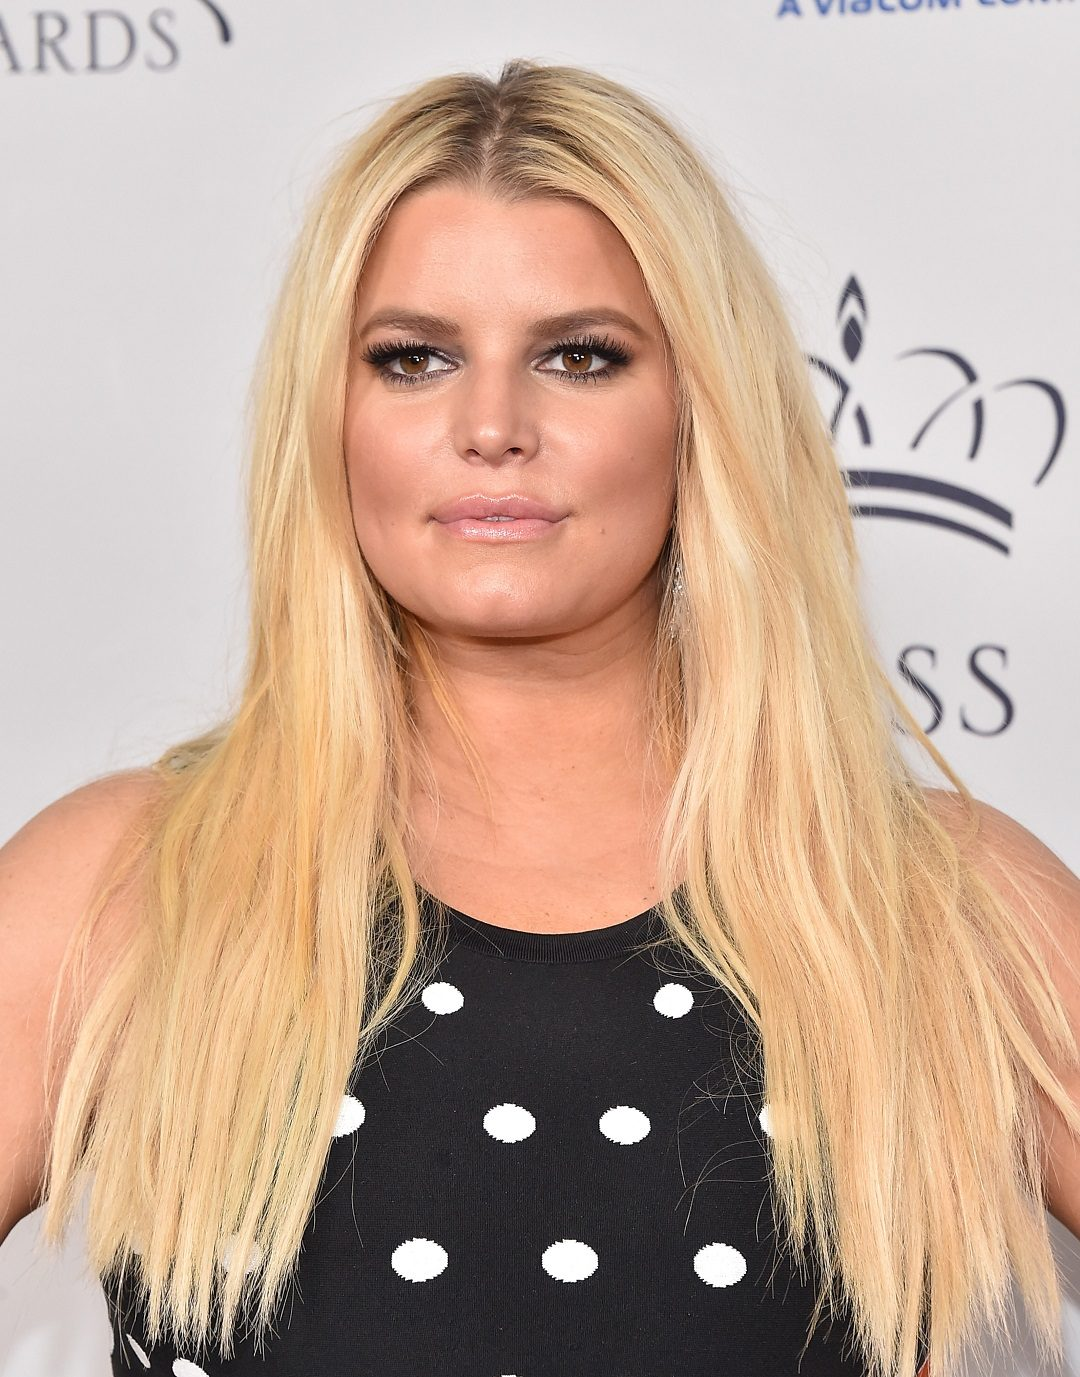 A Mom-Shaming War Broke Out in Jessica Simpson's Comments Section